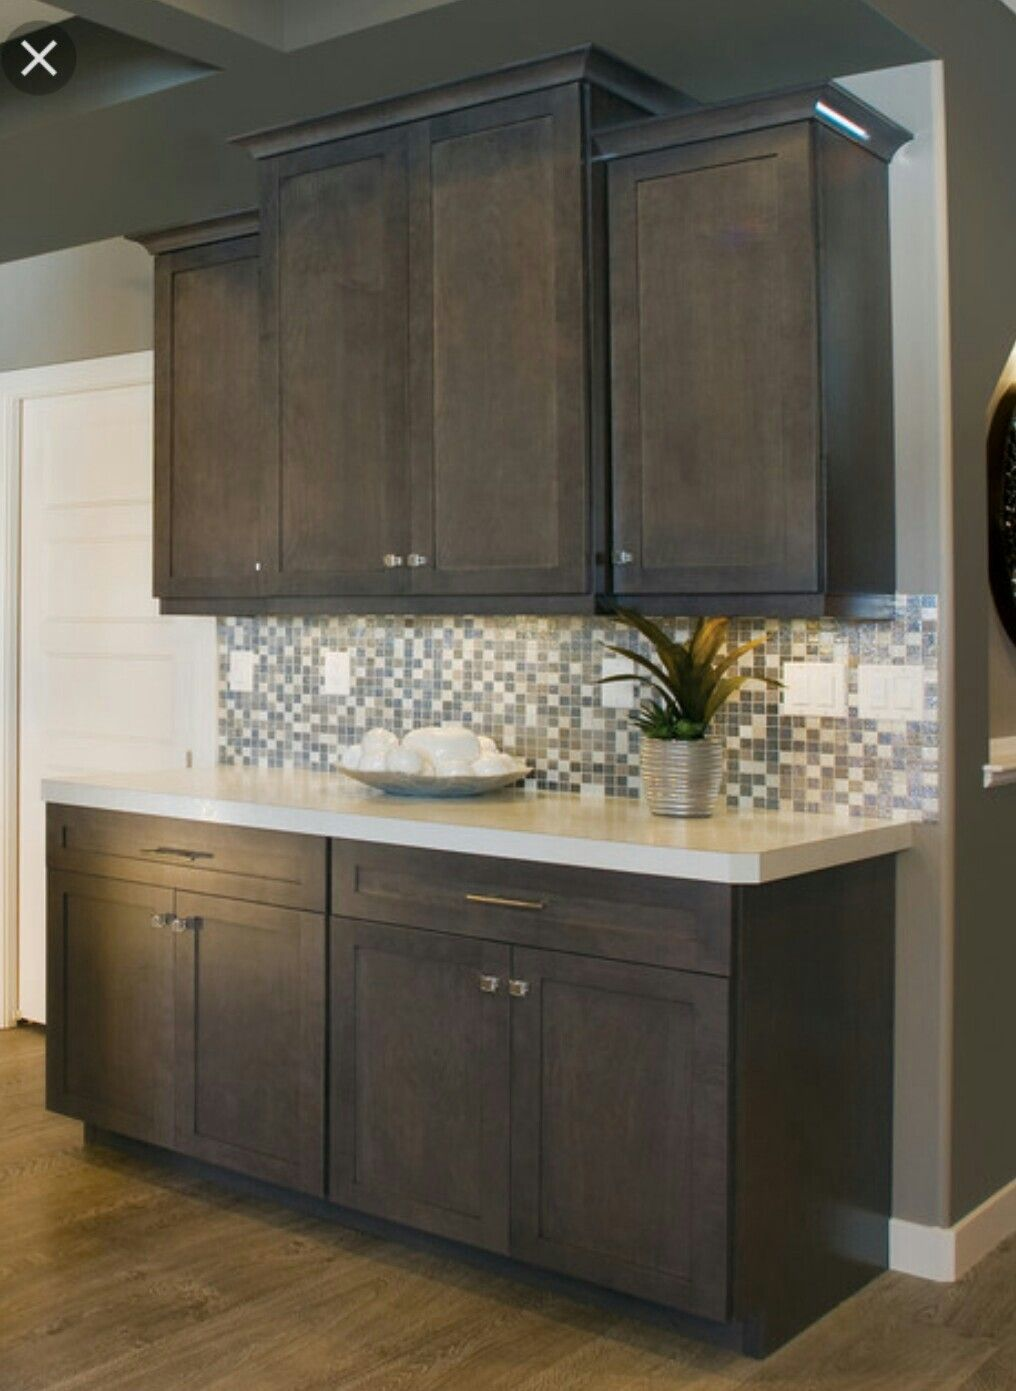 Huntwood Cabinets Shaker Style Arctic Gray Stain